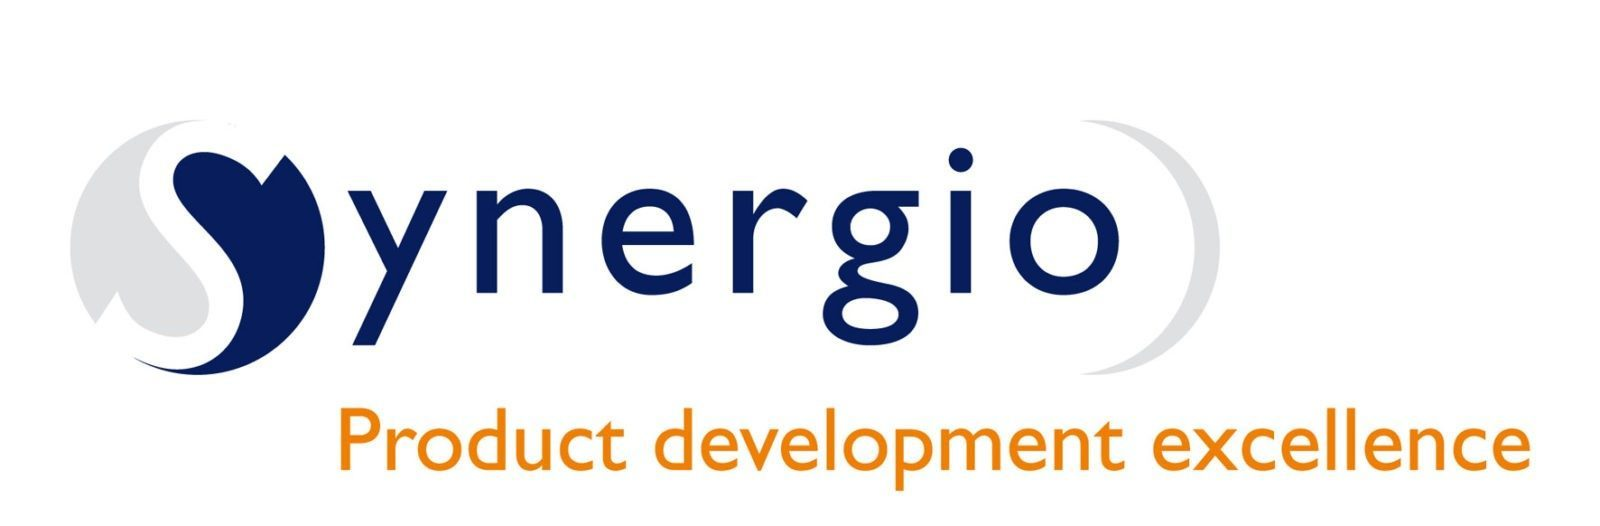 Synergio product development excellence